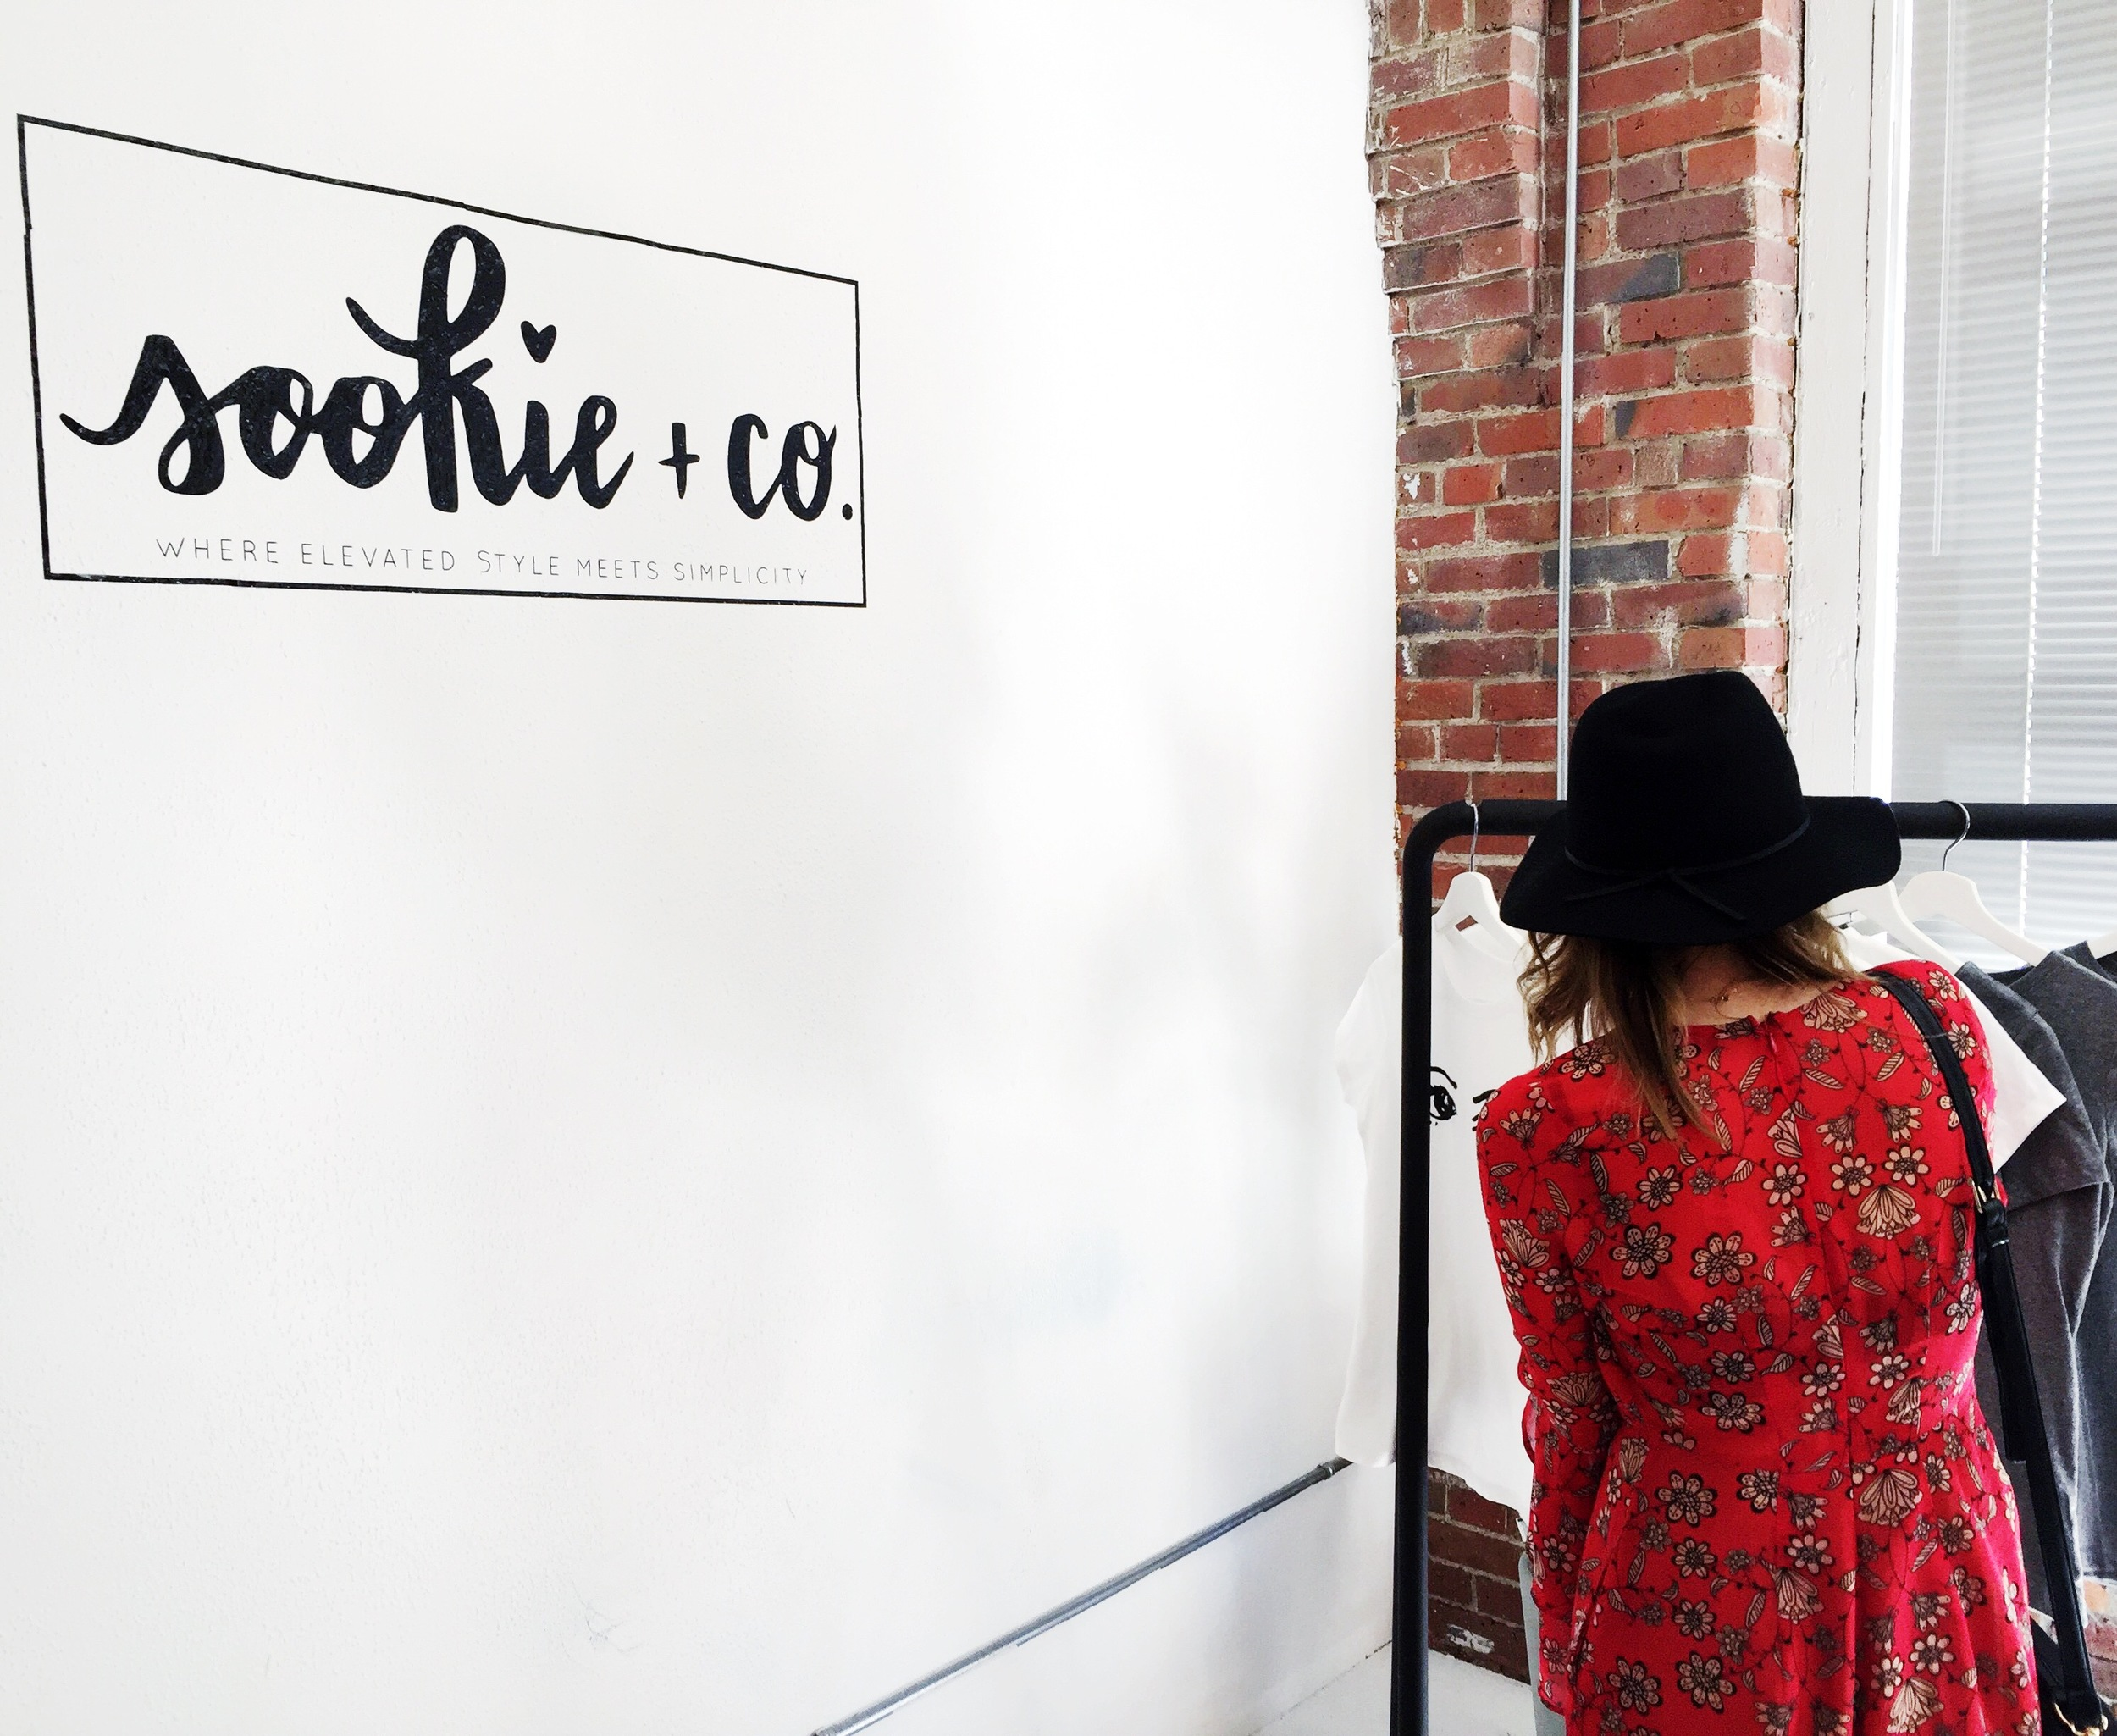 Sookie-And-Co-Launch-Event-Recap